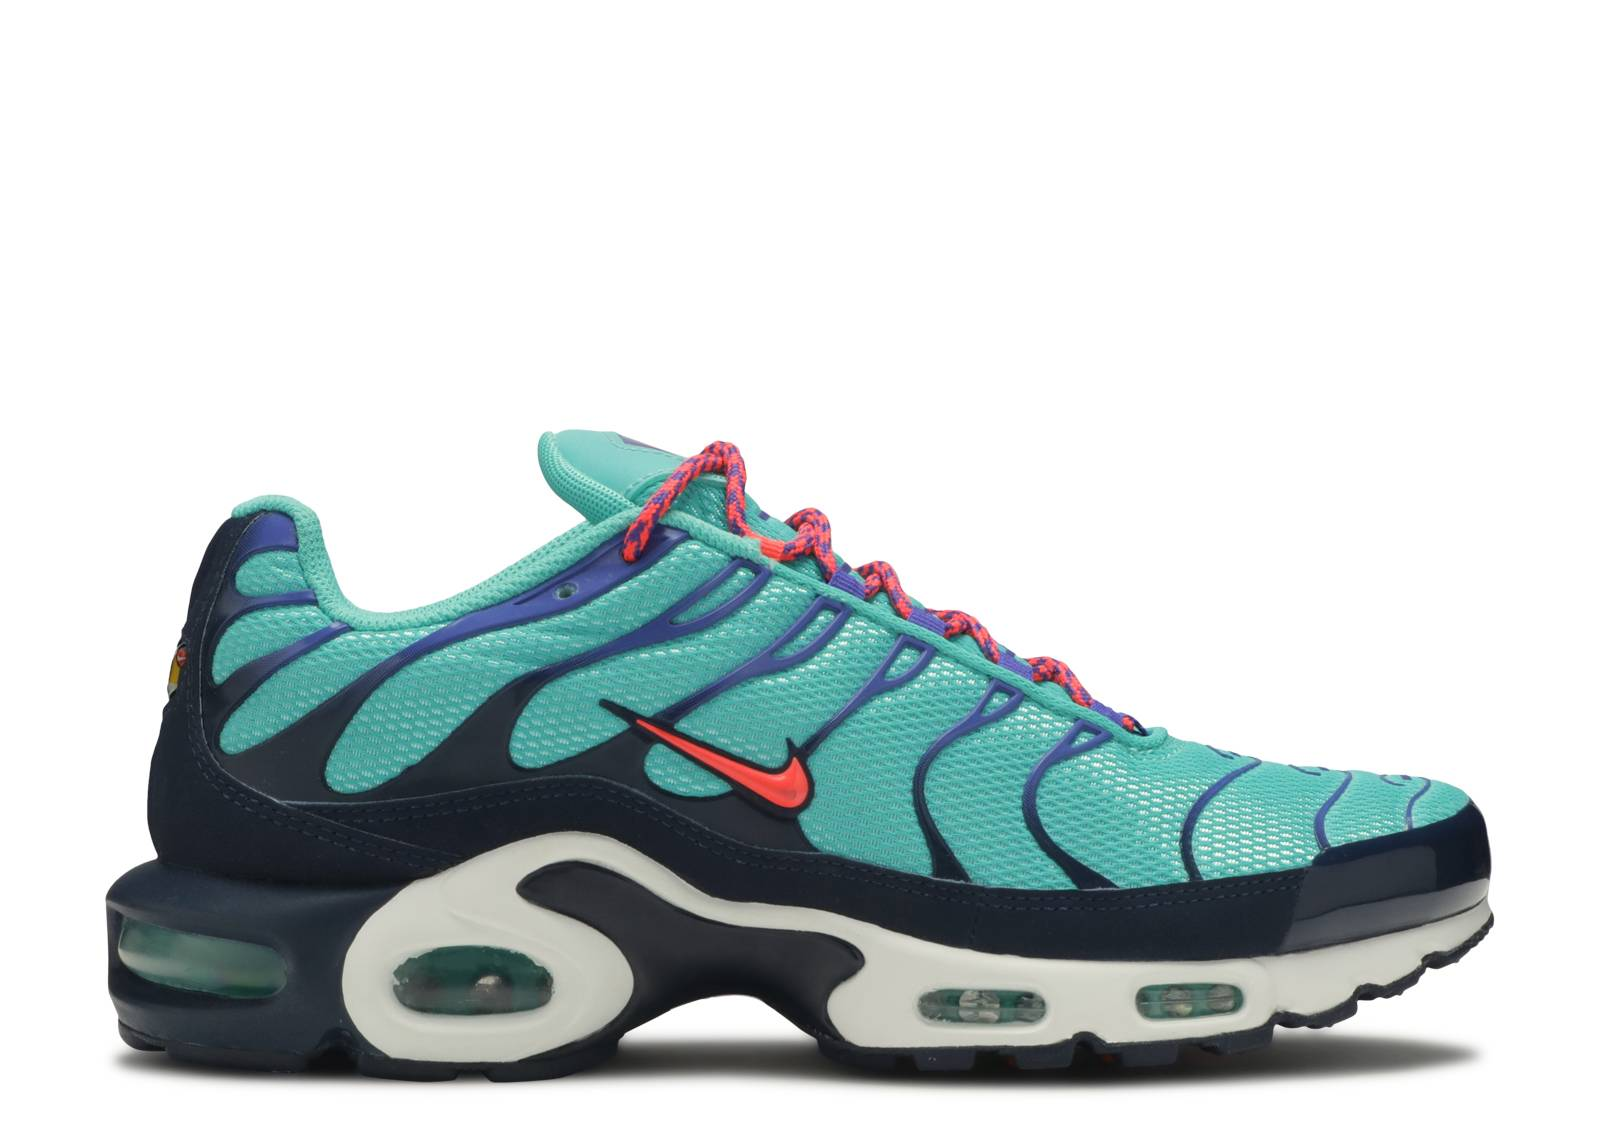 official photos e5186 1ce97 air max plus